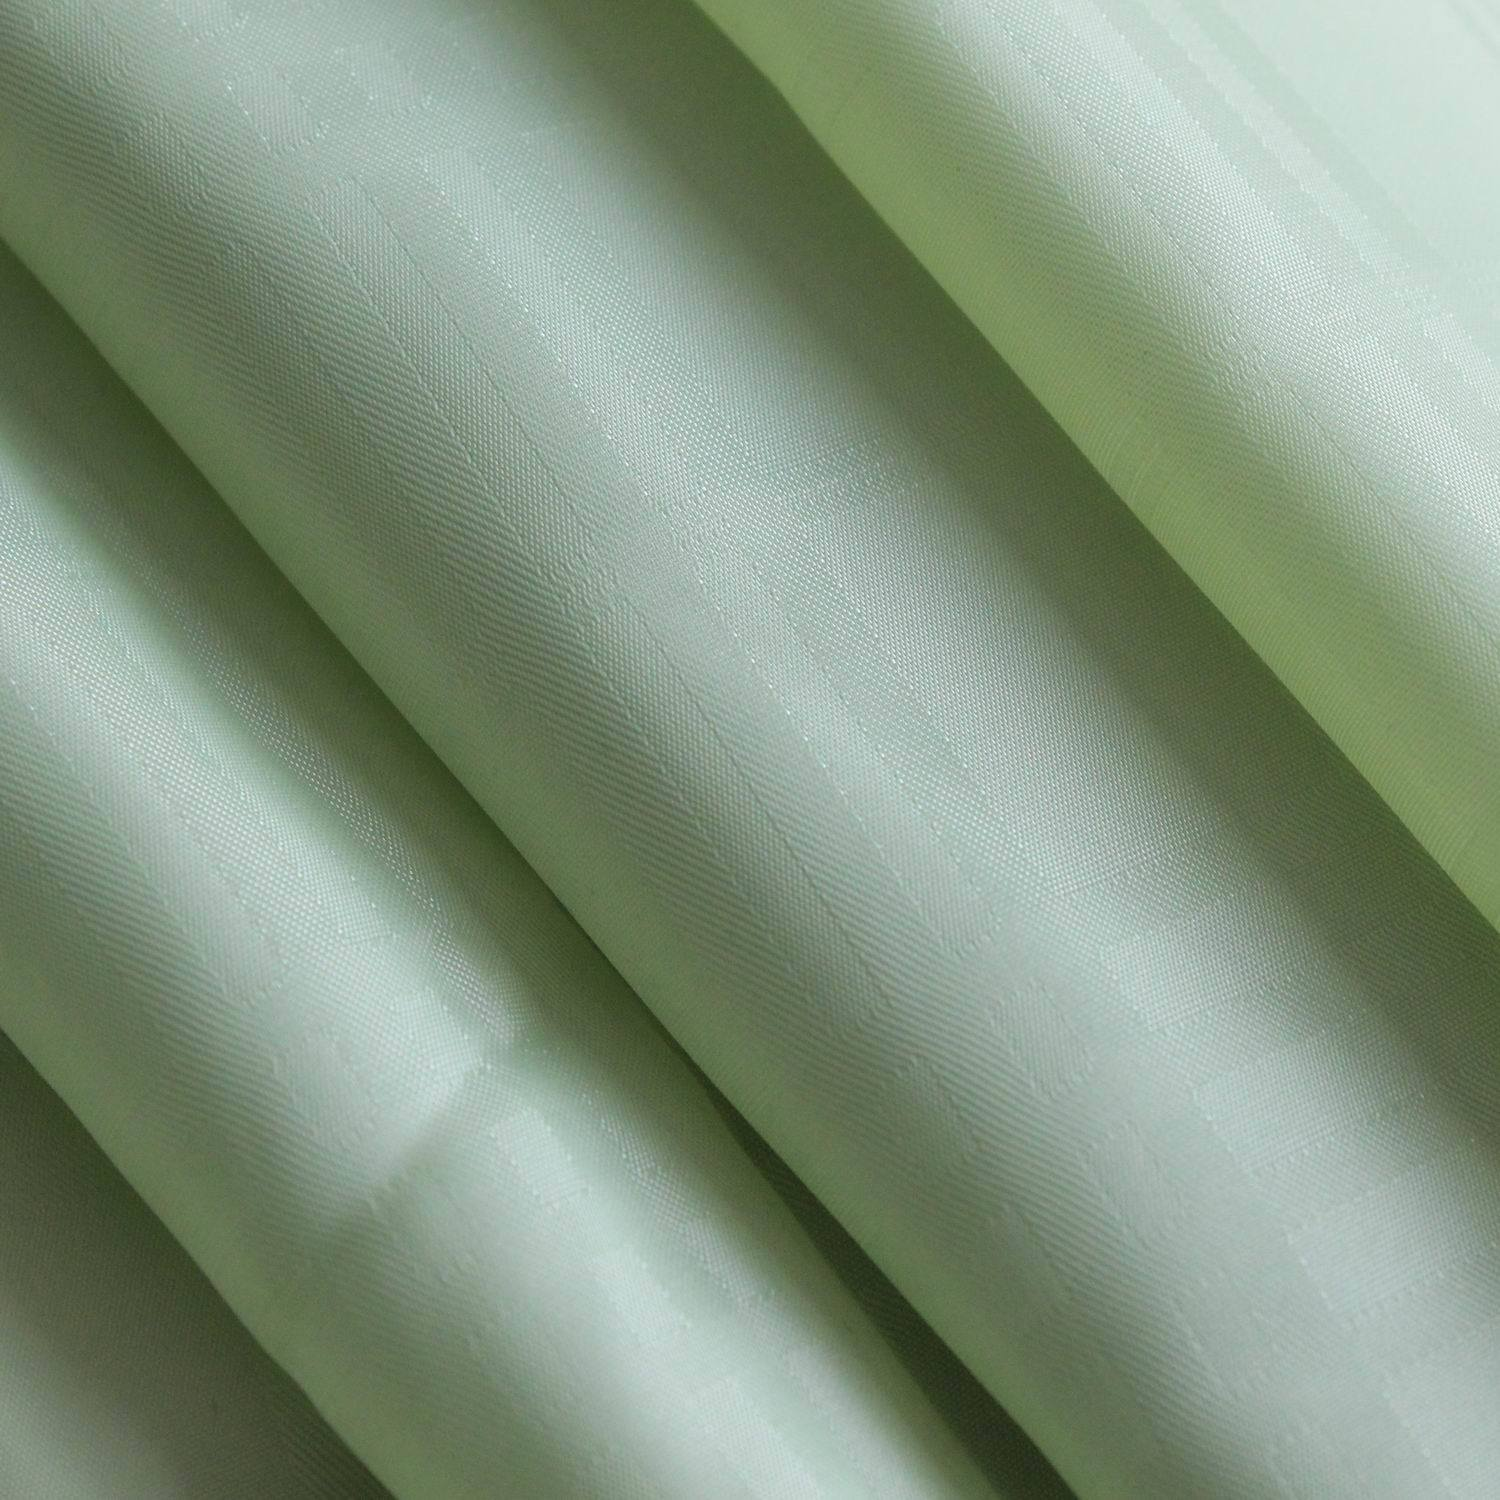 Check 100% Polyester Dyed Waterproof Taffeta Fabric (SLTN9181) for Garment